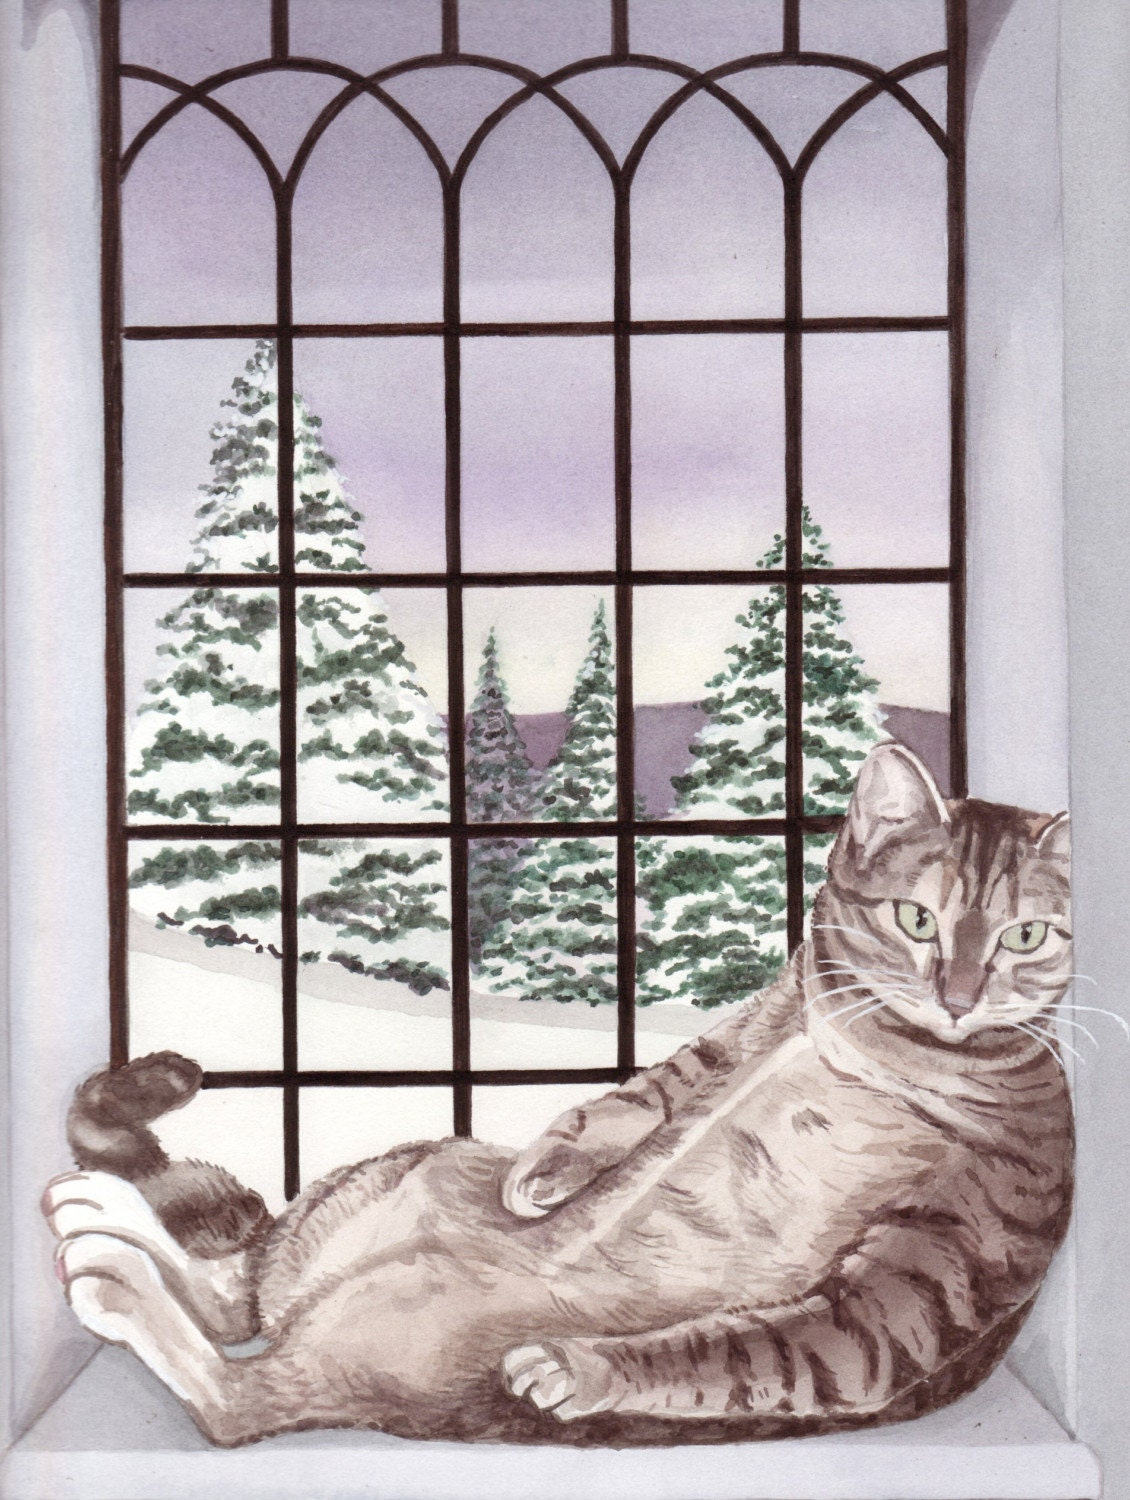 Baby, it's cold outside, but fat cat has warm window seat / Lynch folk art print